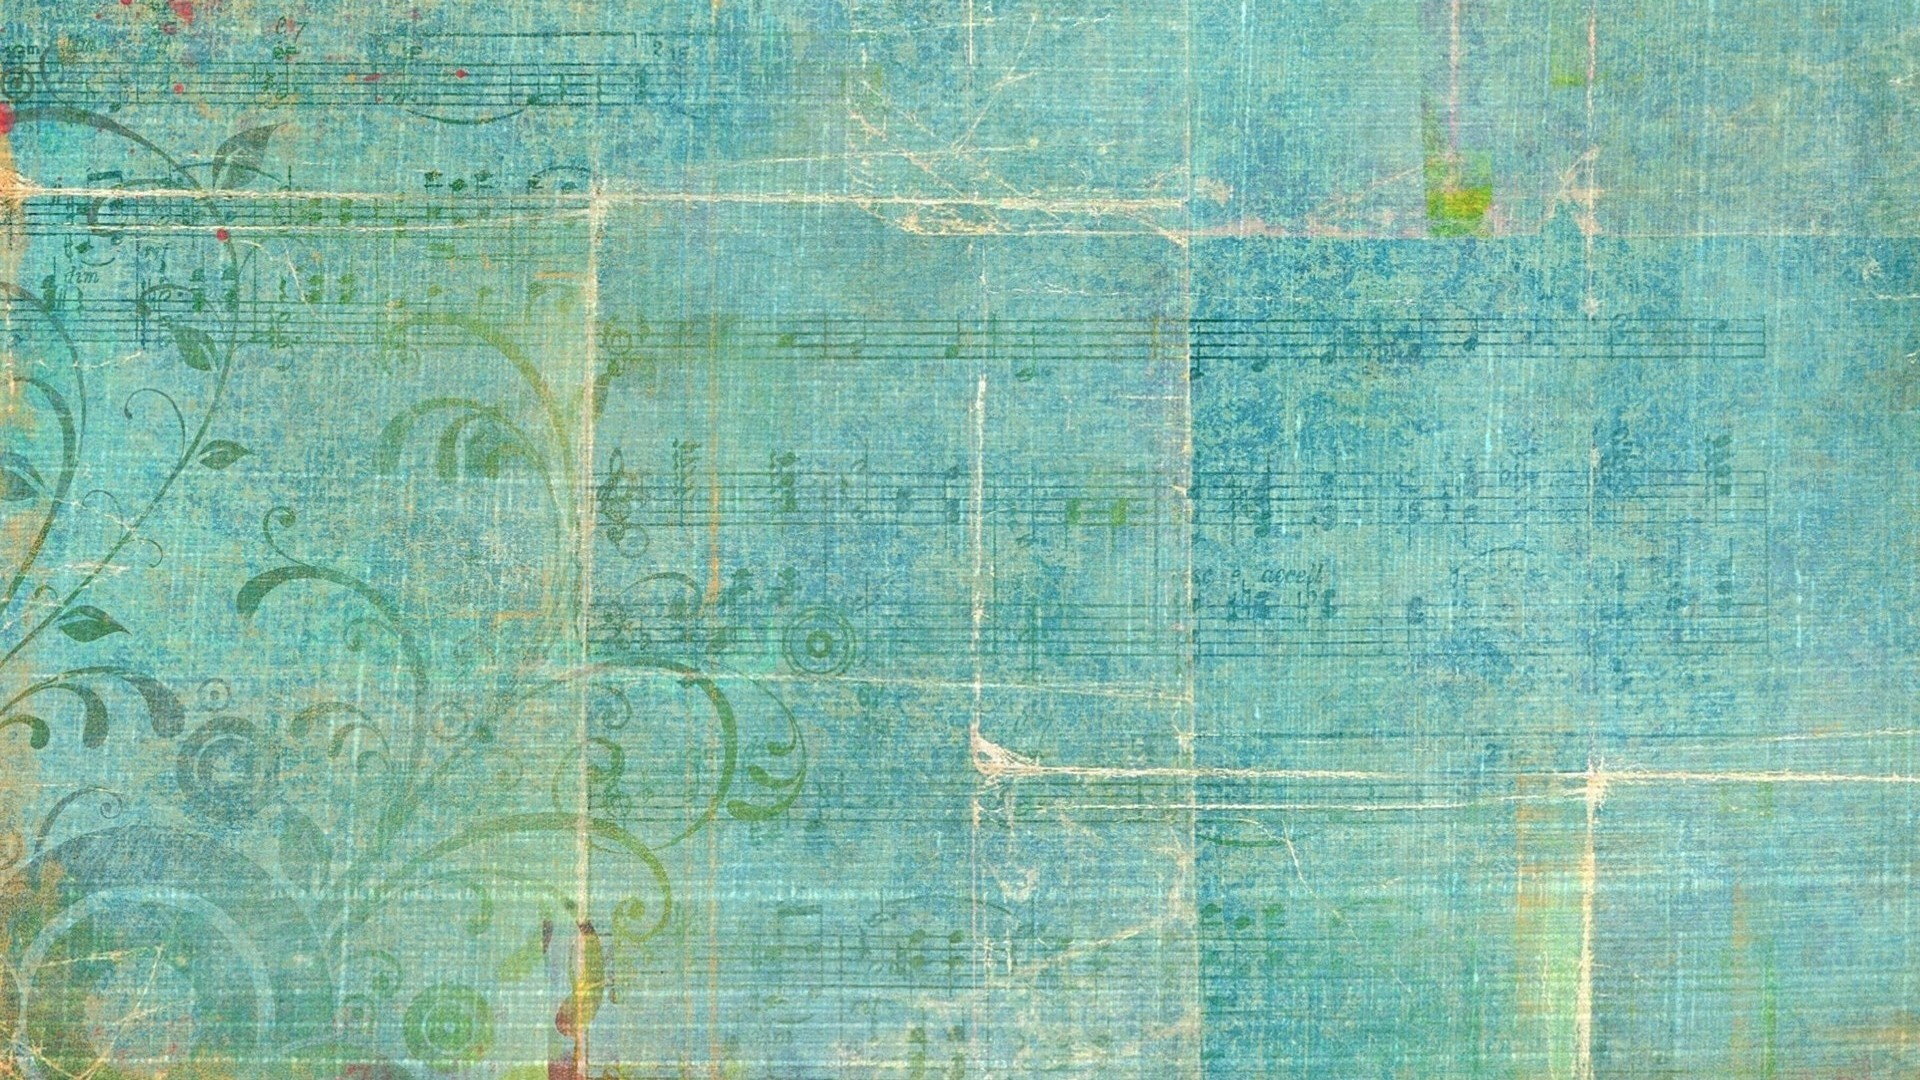 Wallpaper texture, background, surface, pattern, faded